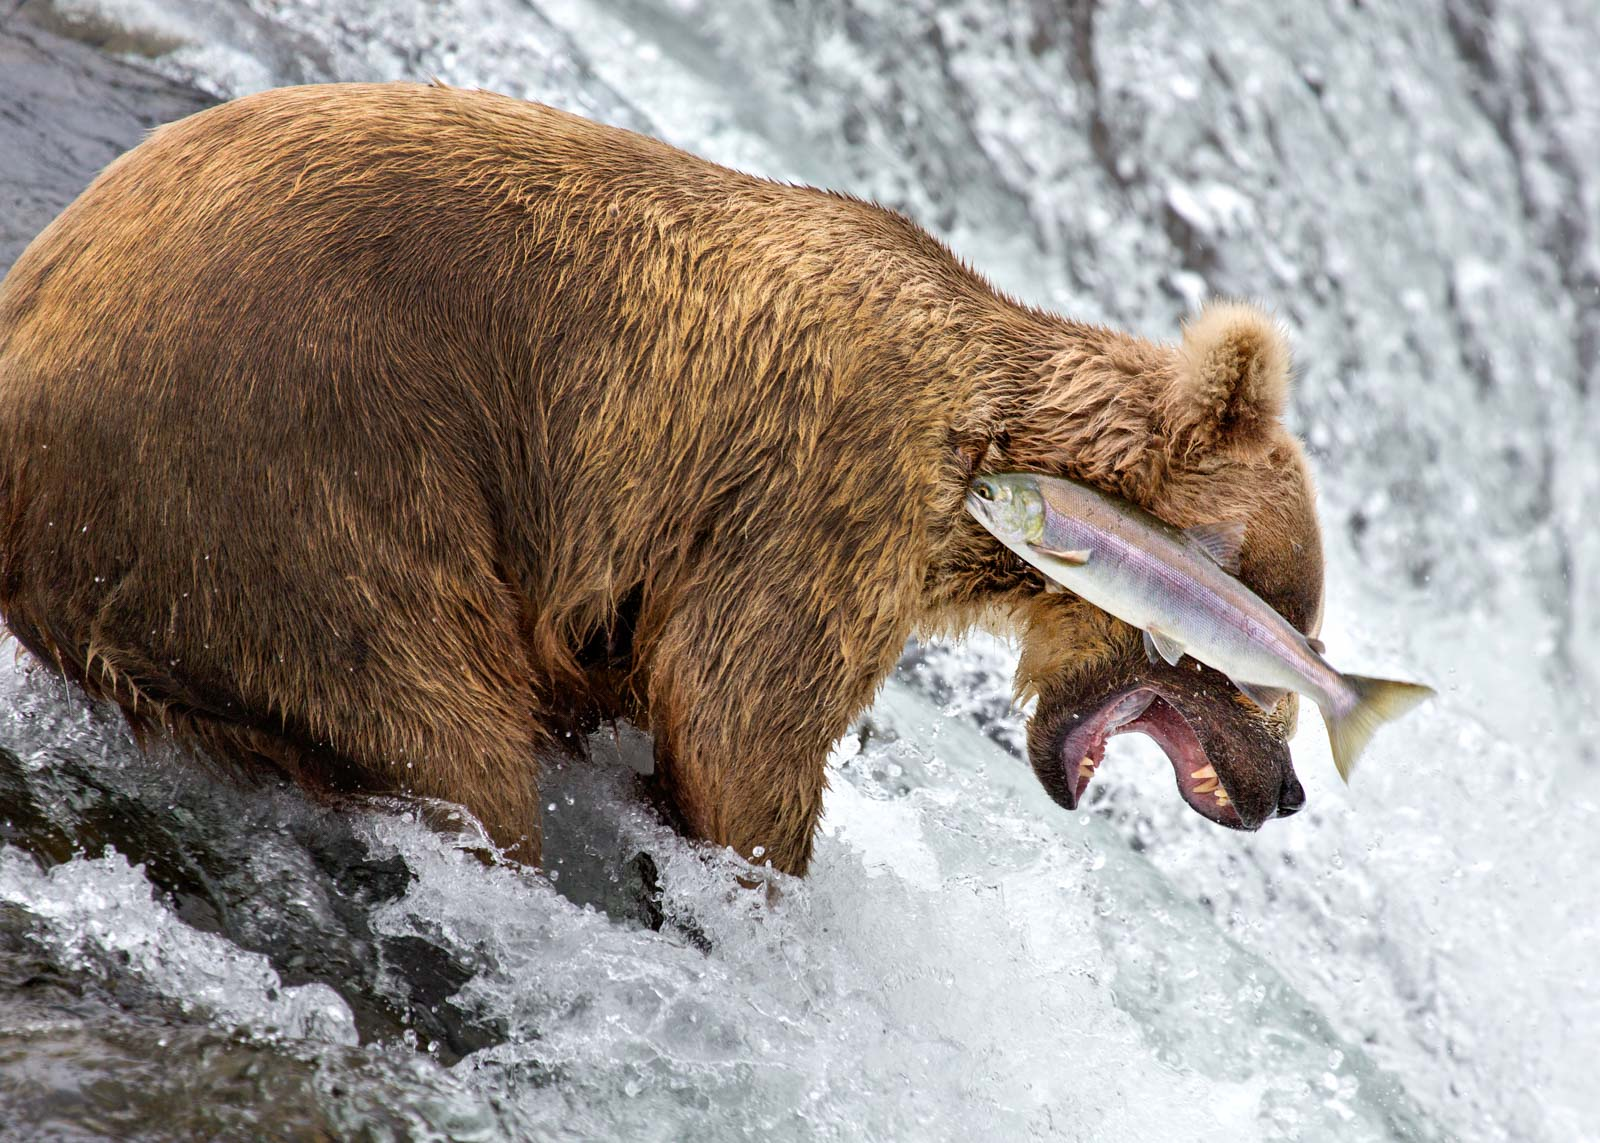 Rob Kroenert's brilliant photo of a bear's near miss catching a fish was Highly Commended this year.